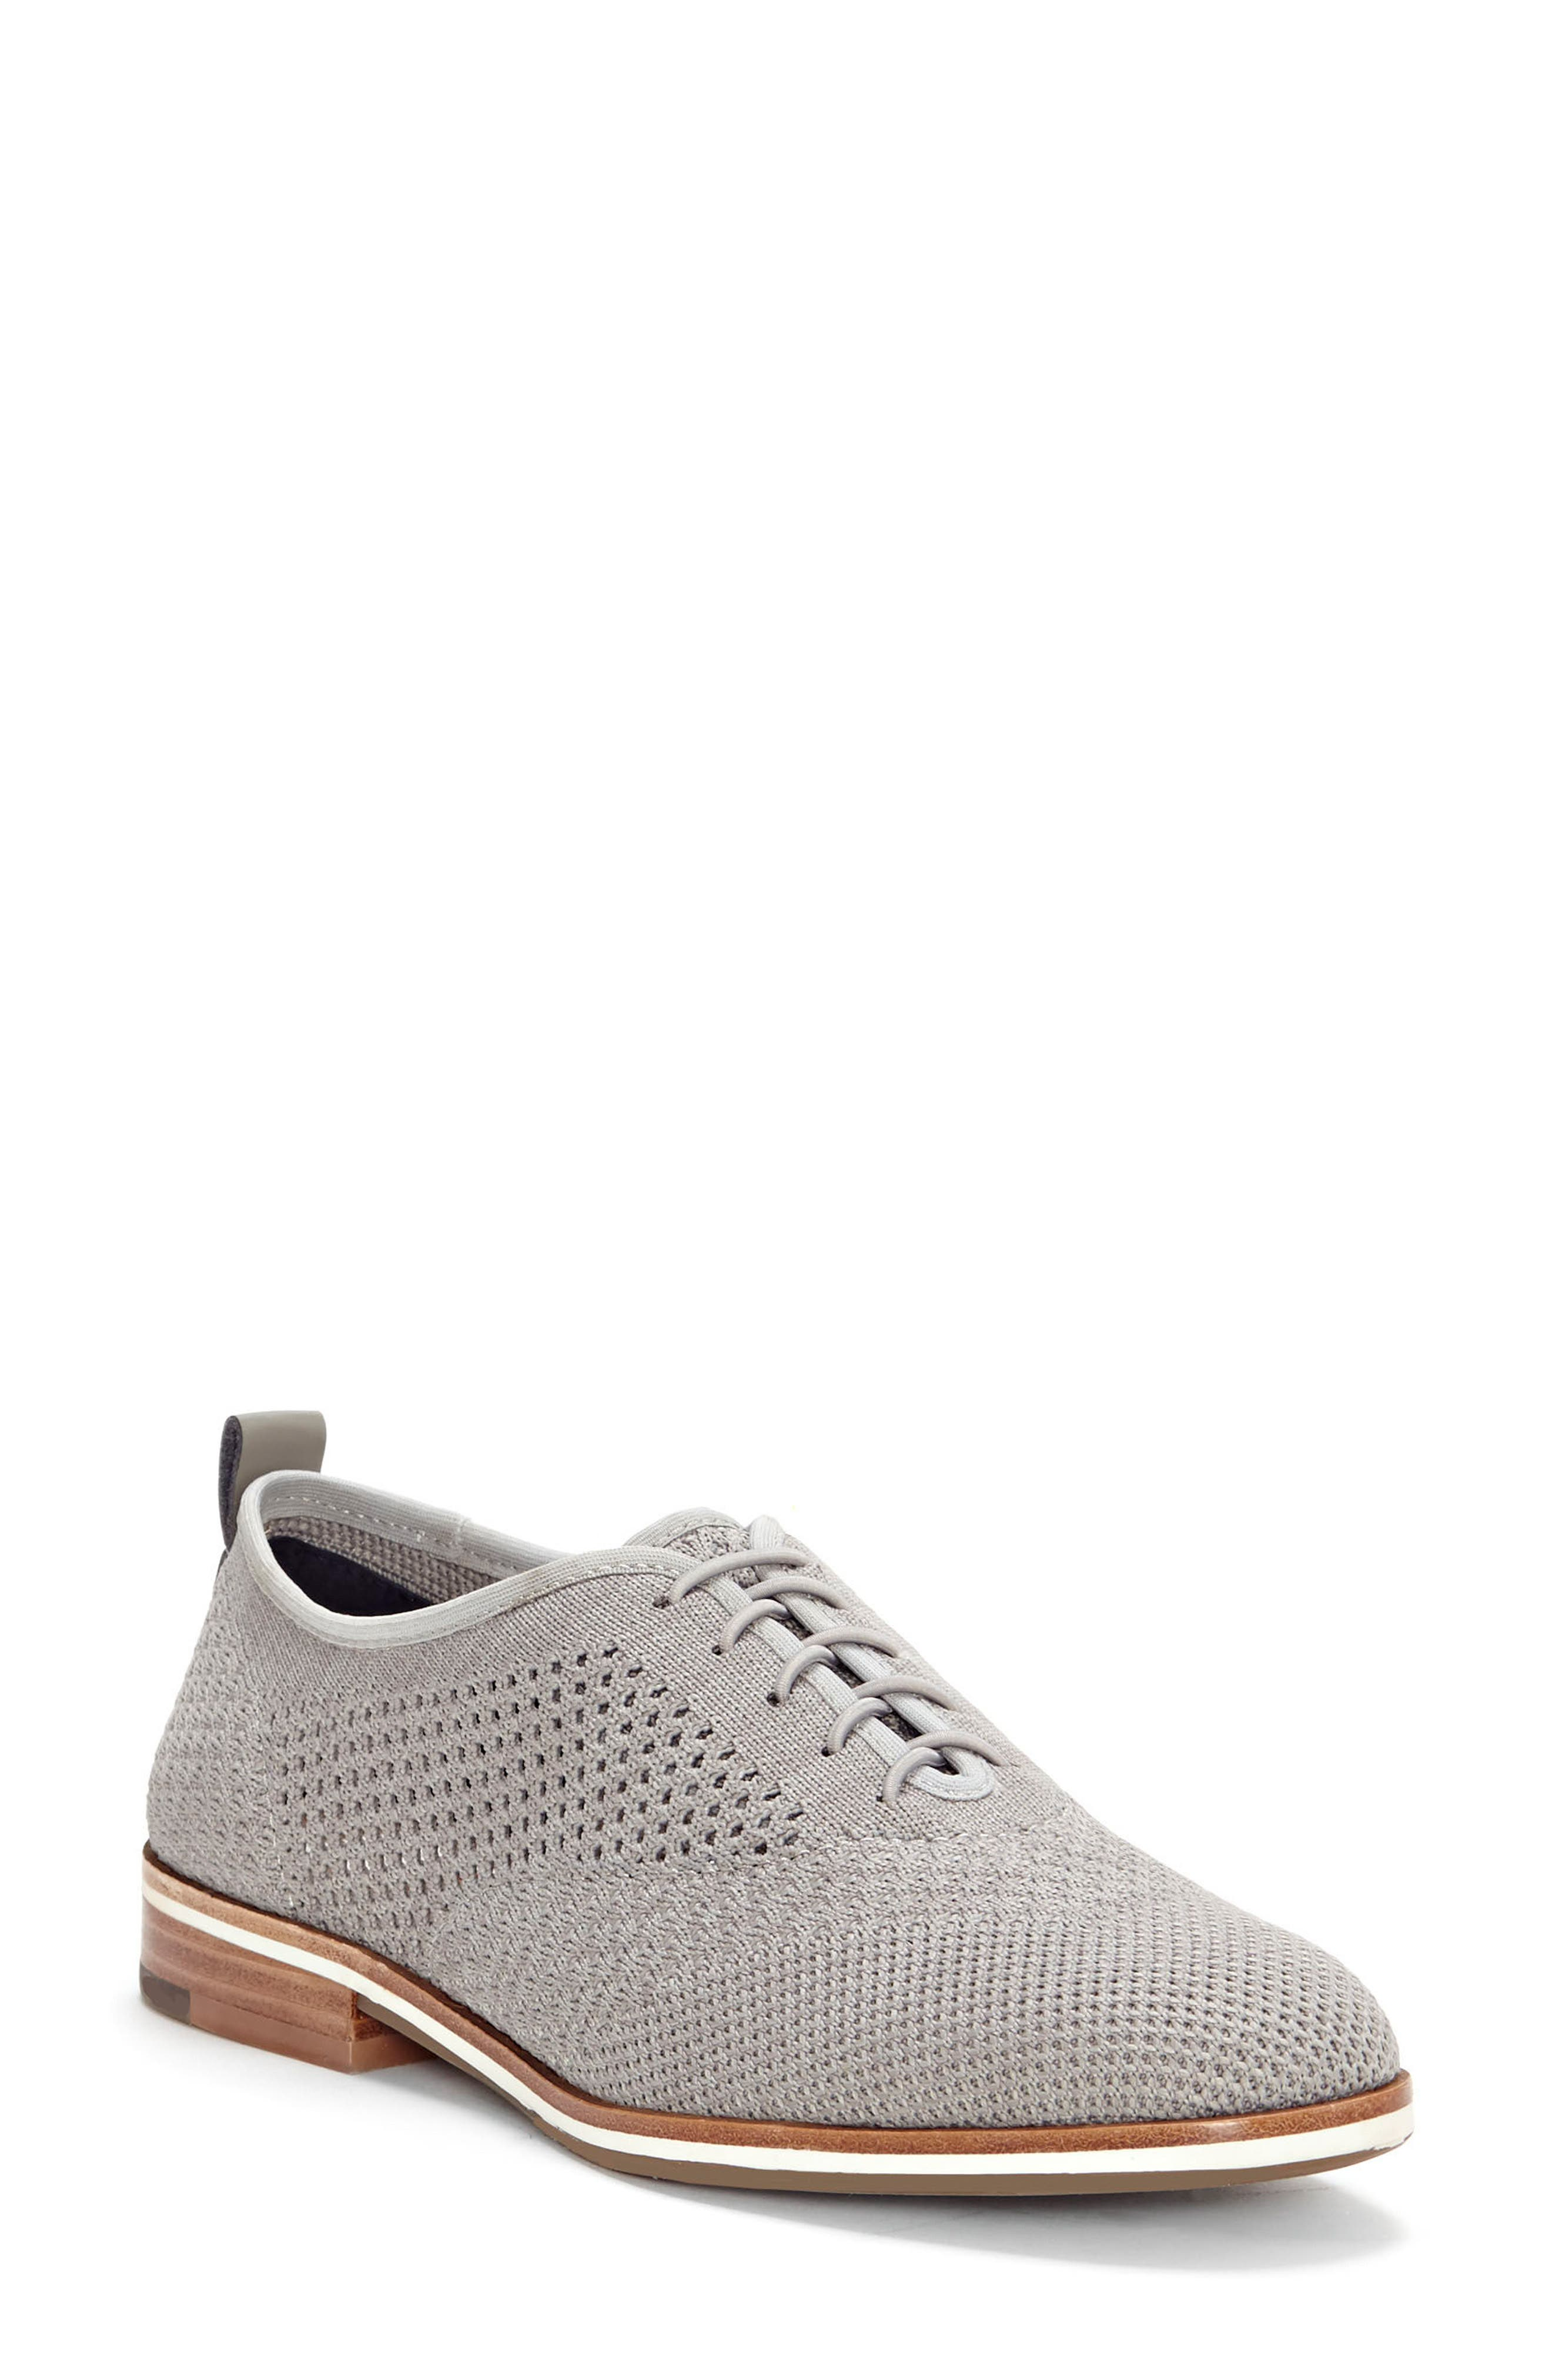 Lucerne Knit Oxford,                         Main,                         color, HEATHER GREY TEXTILE FABRIC